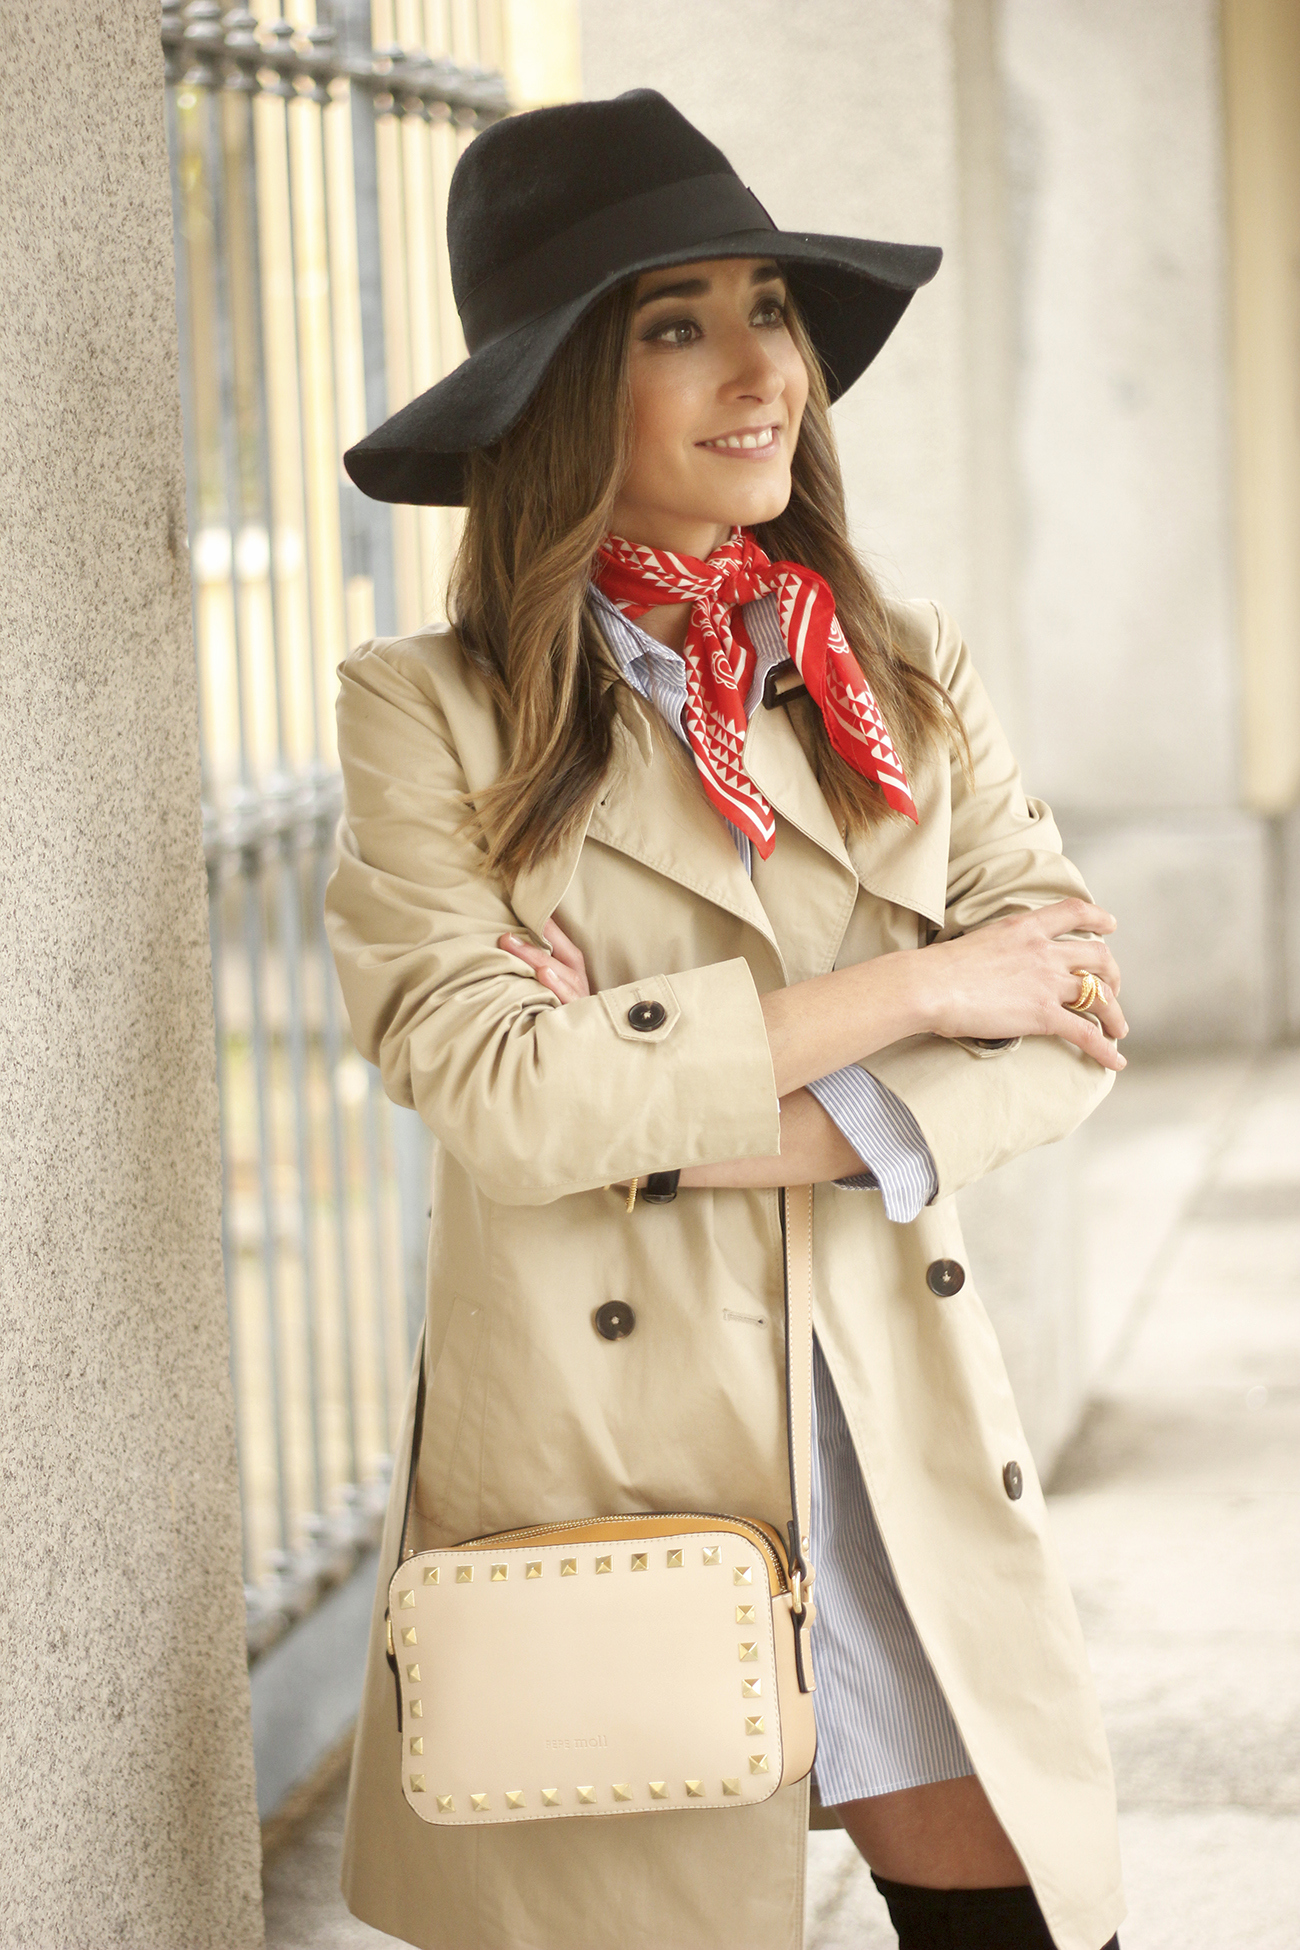 trench dress shirt over the knee boots red bandana hat pepe moll bag05